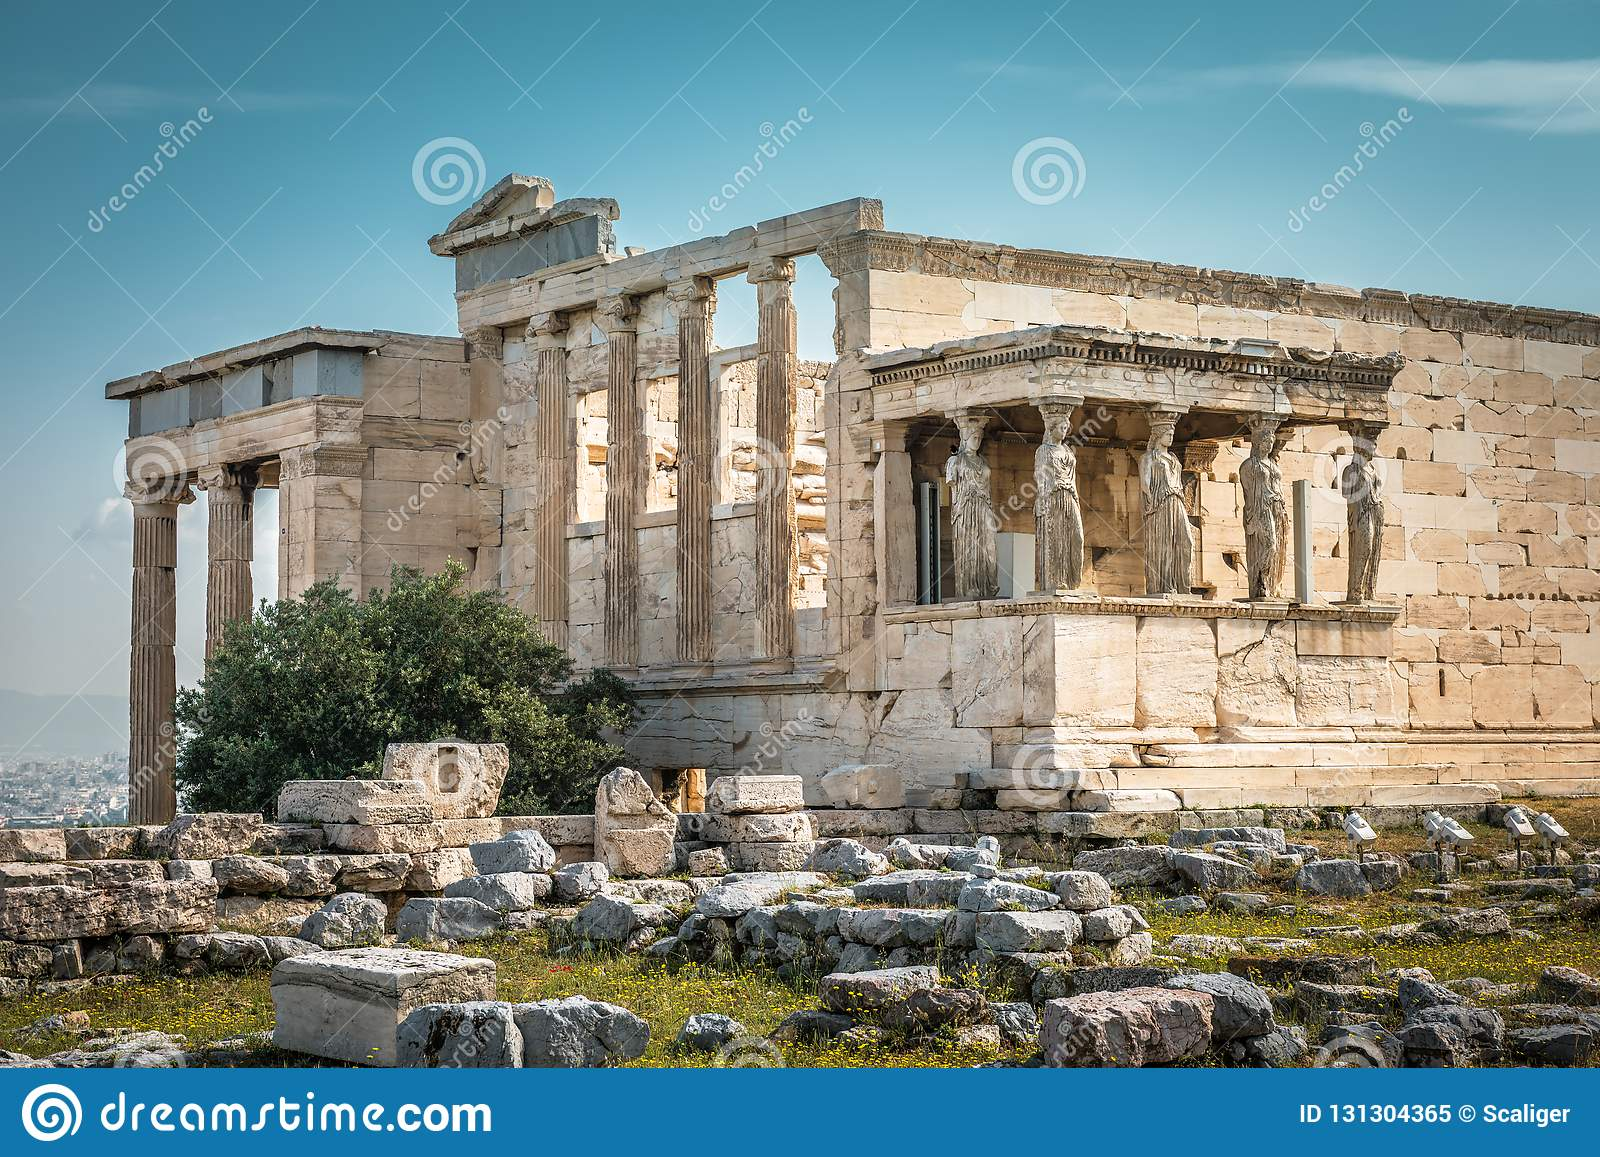 Erechtheion temple with Caryatid Porch on the Acropolis, Athens, Greece